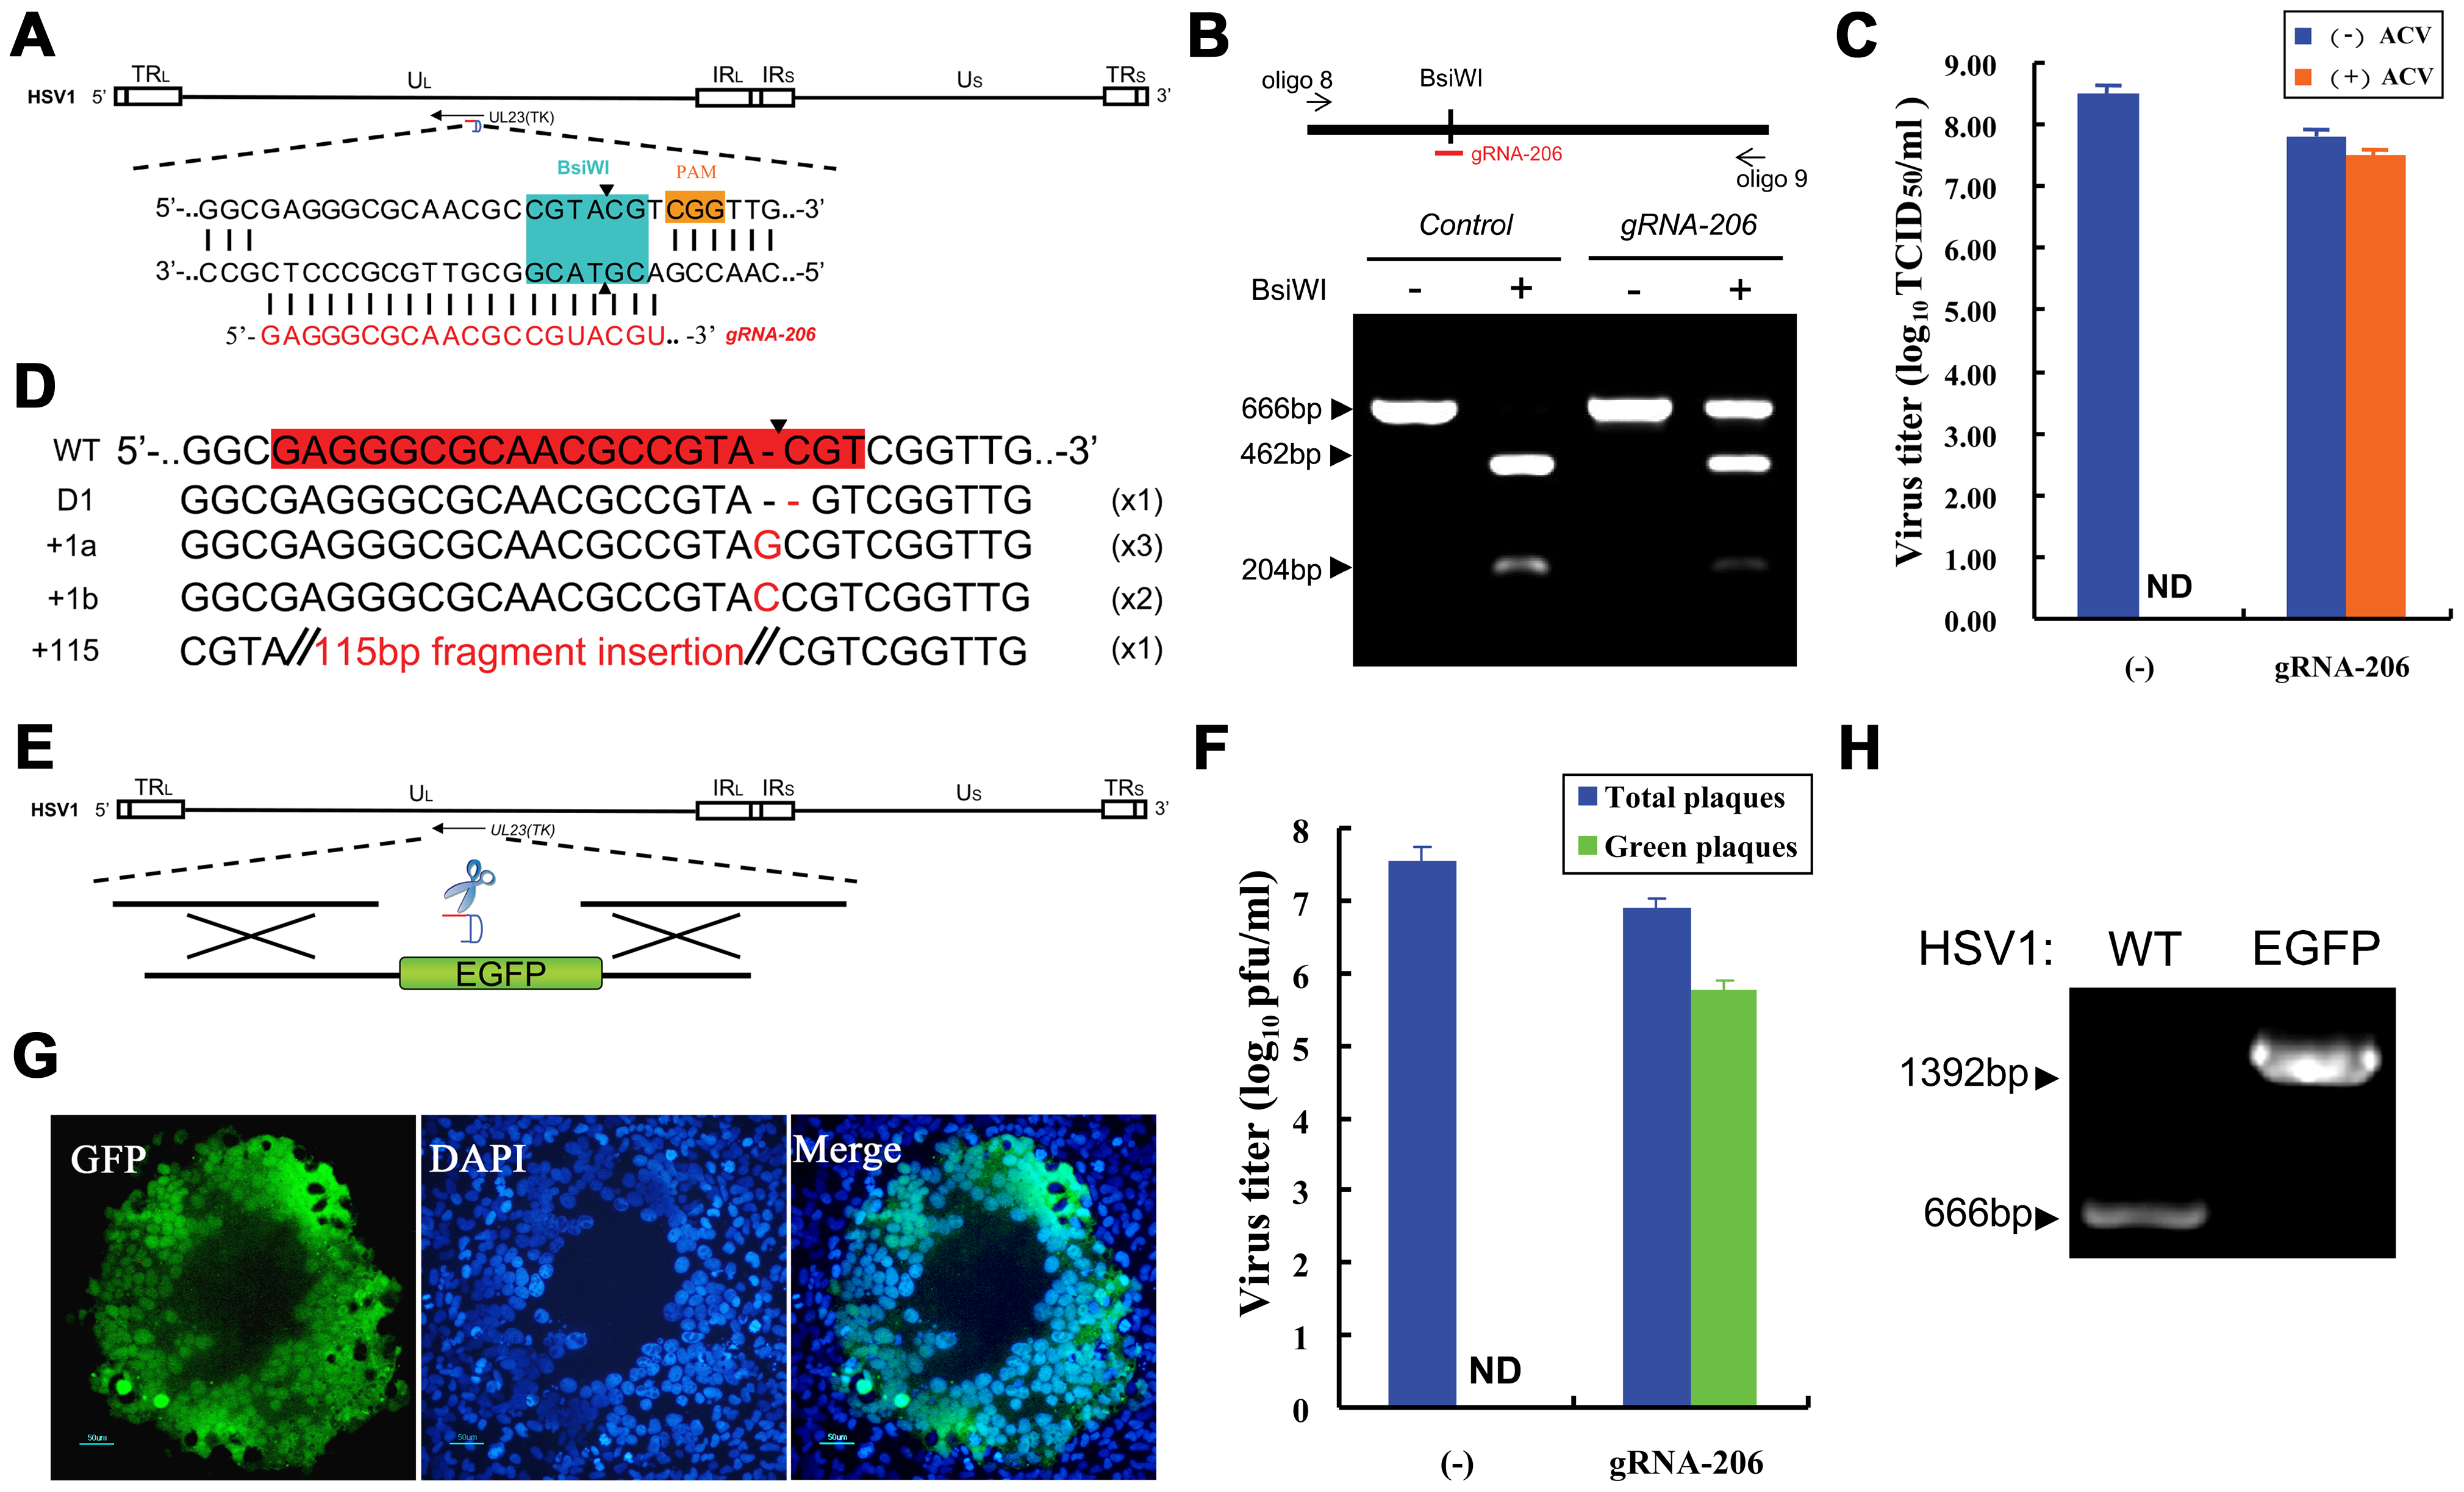 Herpes simplex viral genome editing targeted by the CRISPR-Cas system.